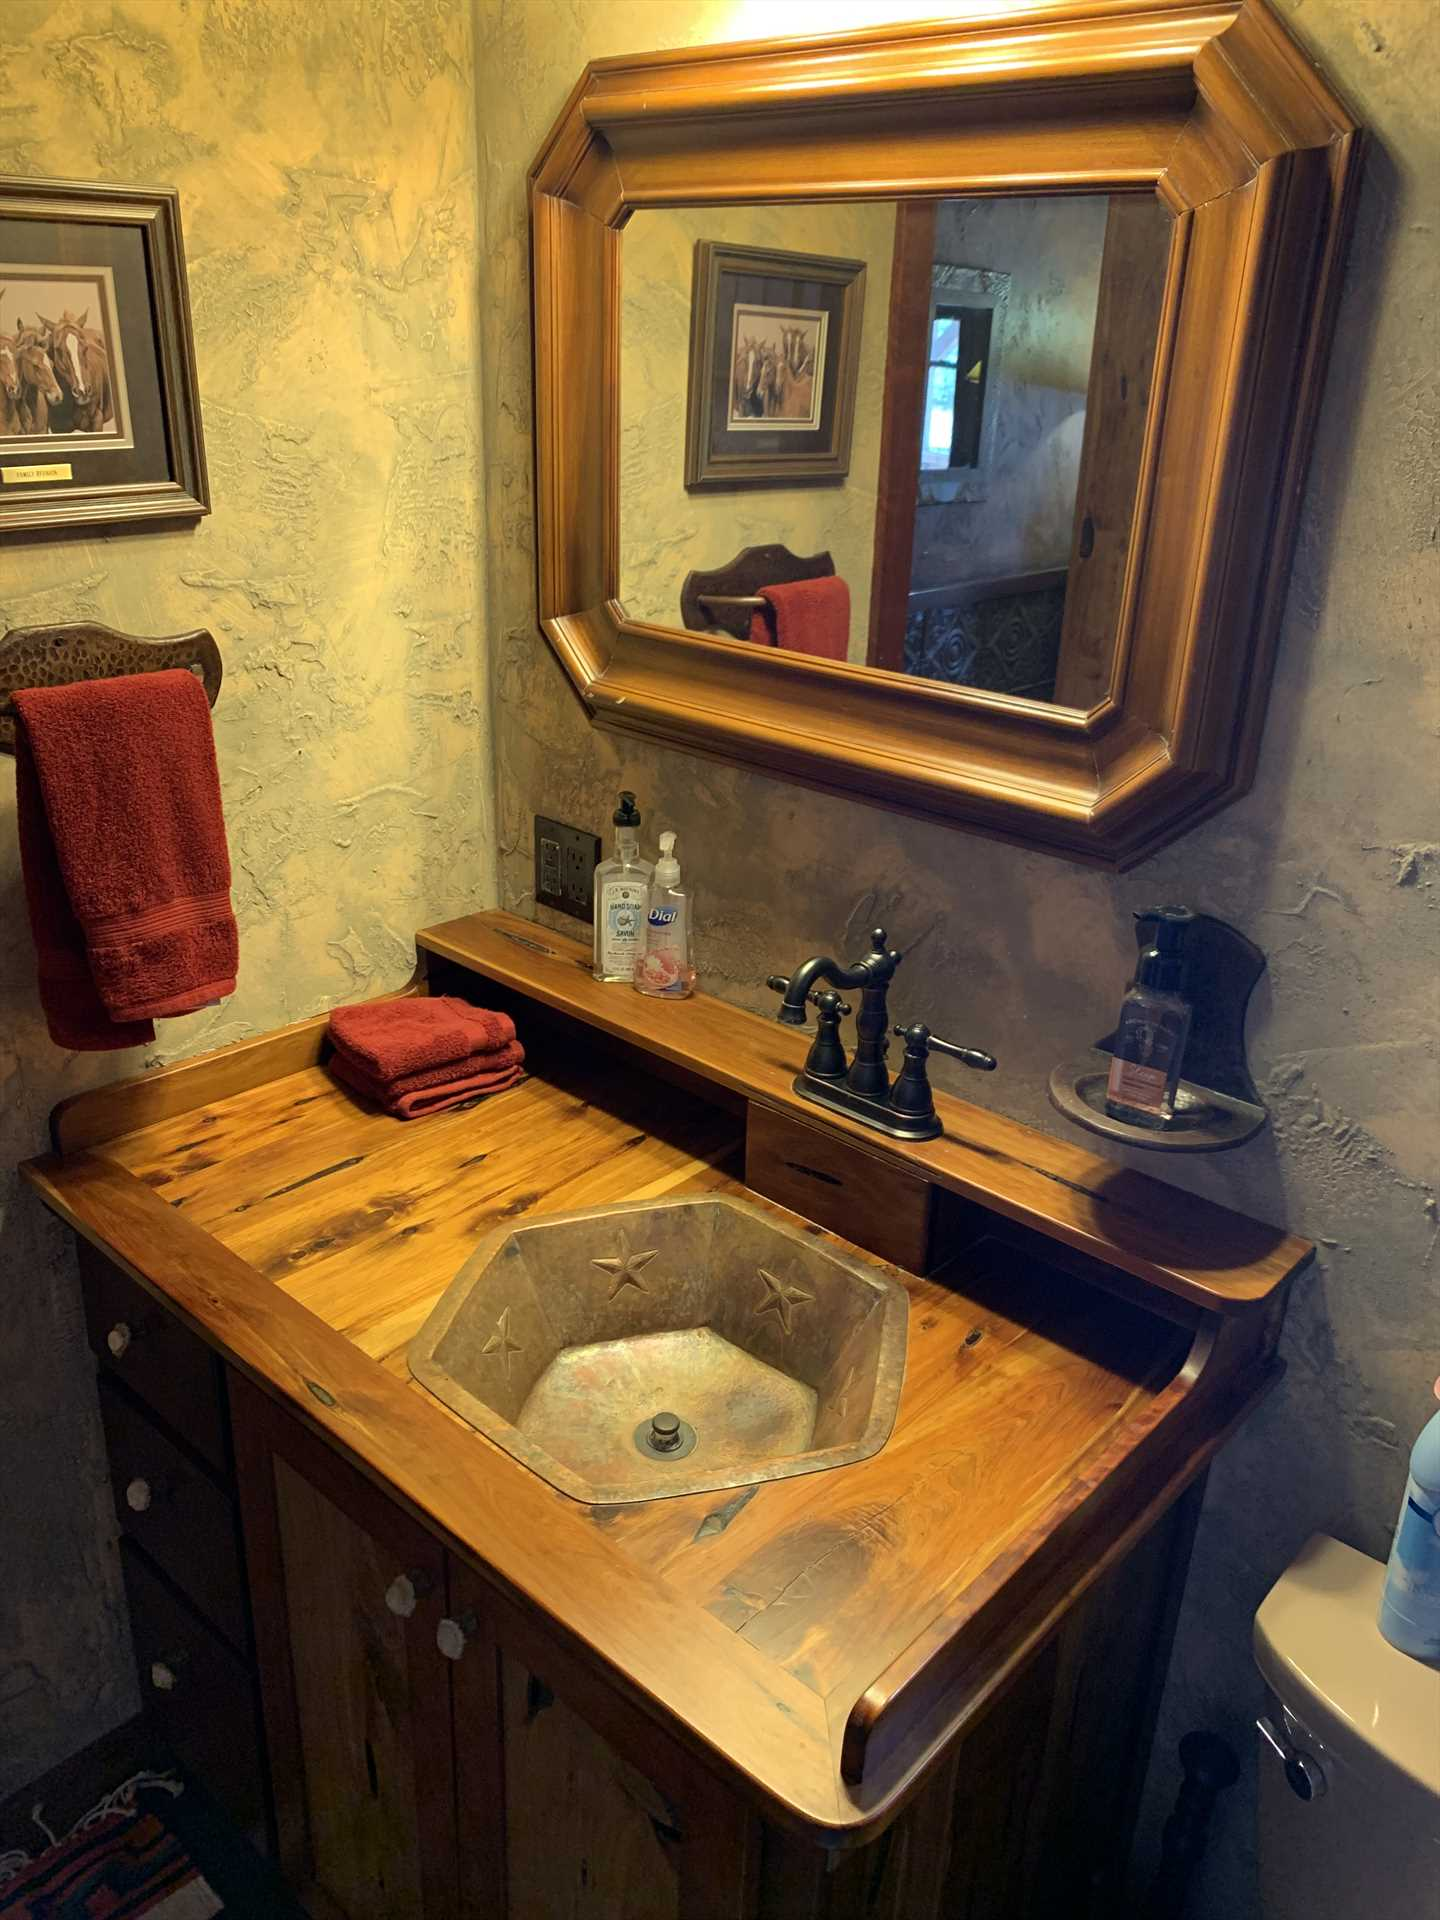 Unique woodwork and geometric furnishings make even the bathroom at the Antler Cabin stand out!